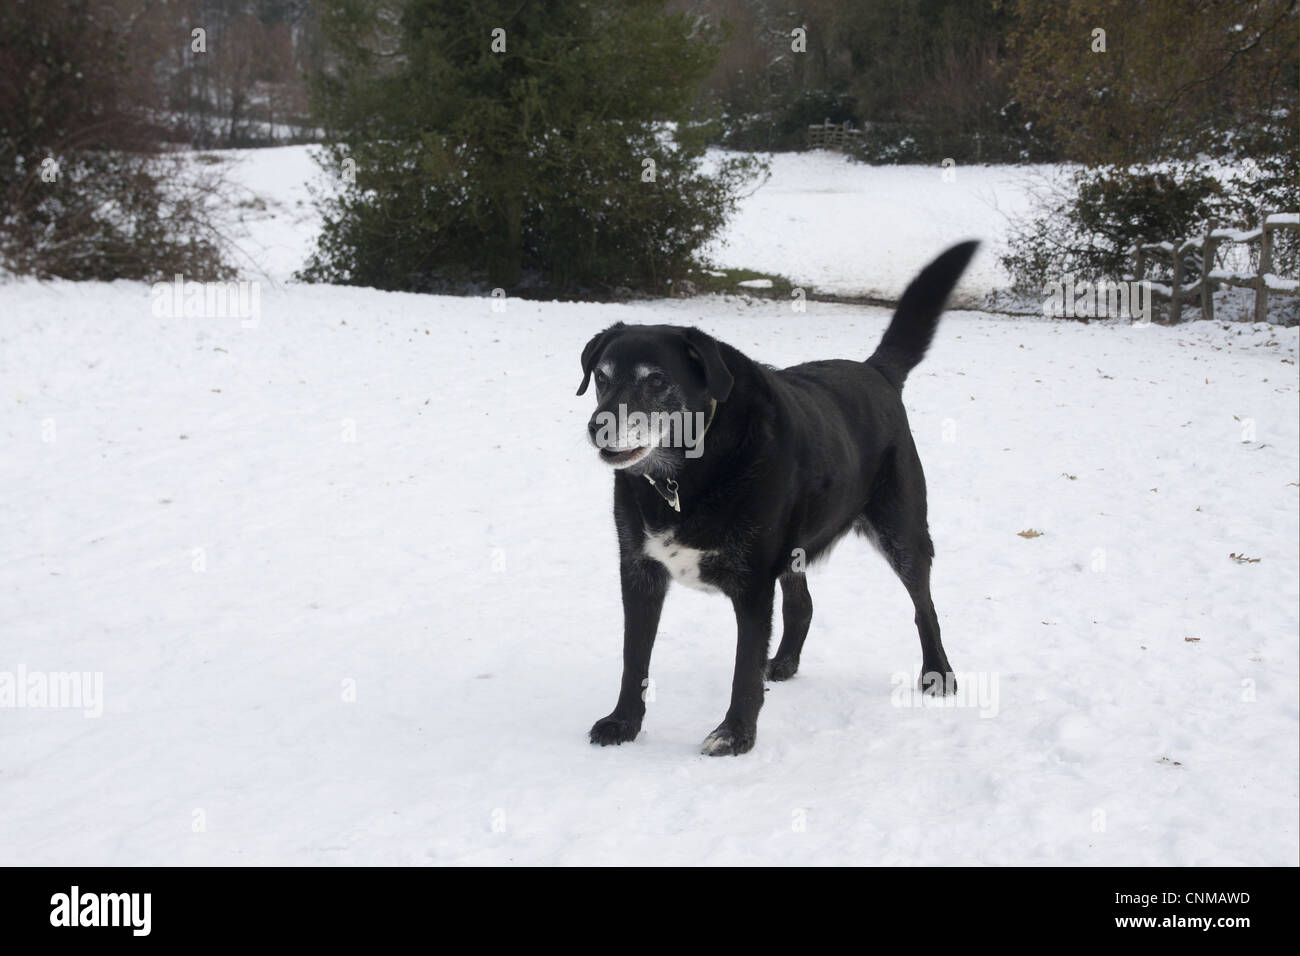 Domestic Dog, labrador cross mongrel, elderly adult, barking and wagging tail in snow, England, december - Stock Image